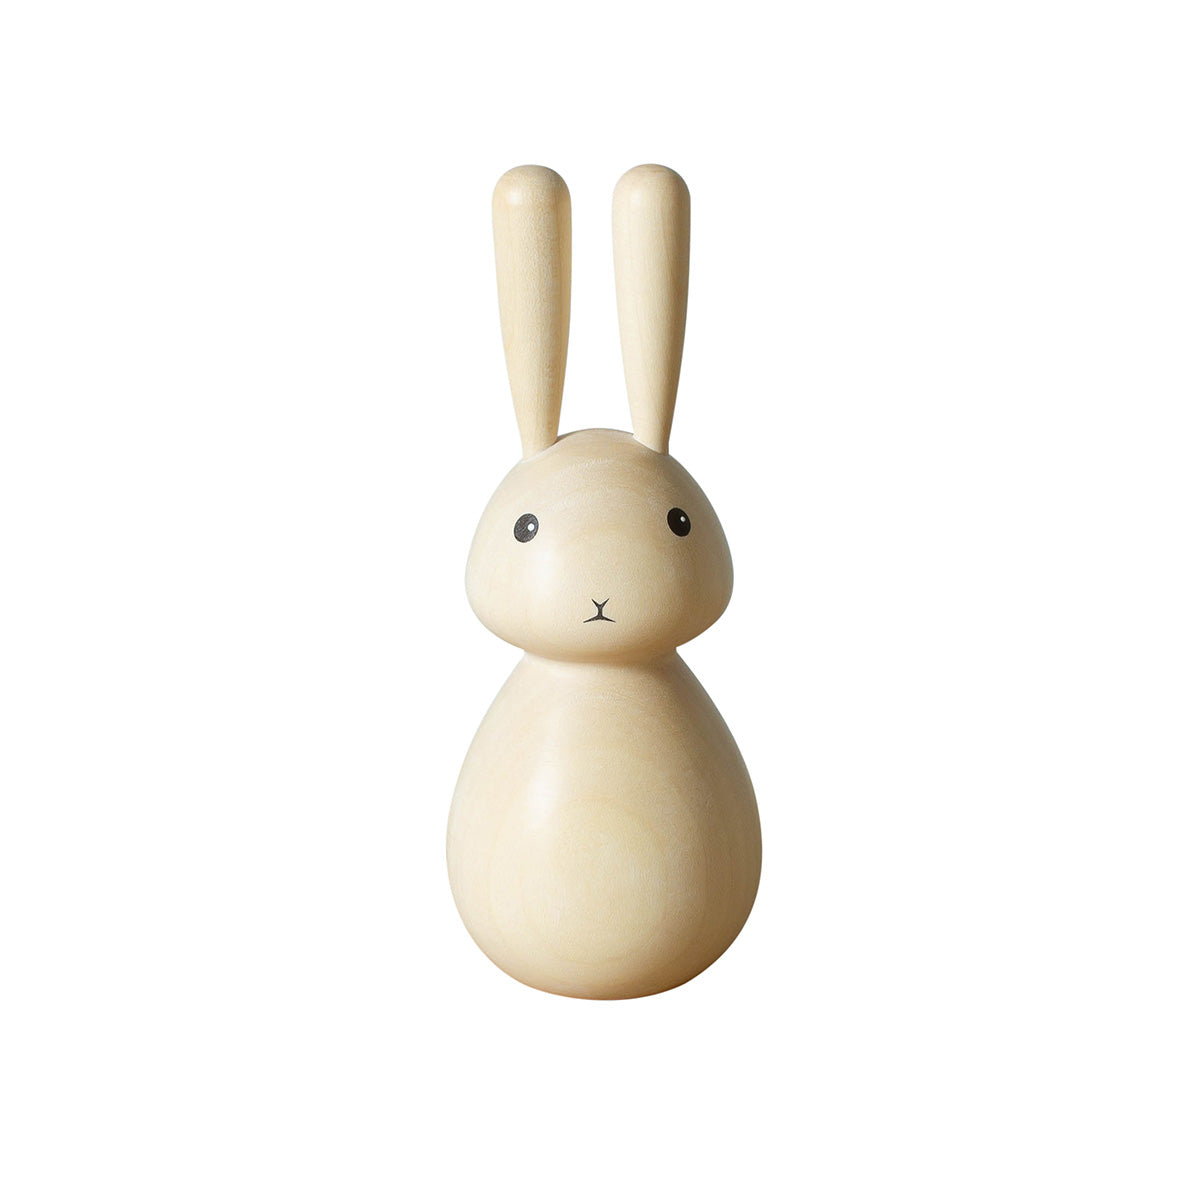 Freywood Rabbits - Wood Rabbit - Norway - Scandinavian Home - Freywood Rabbit - Maple